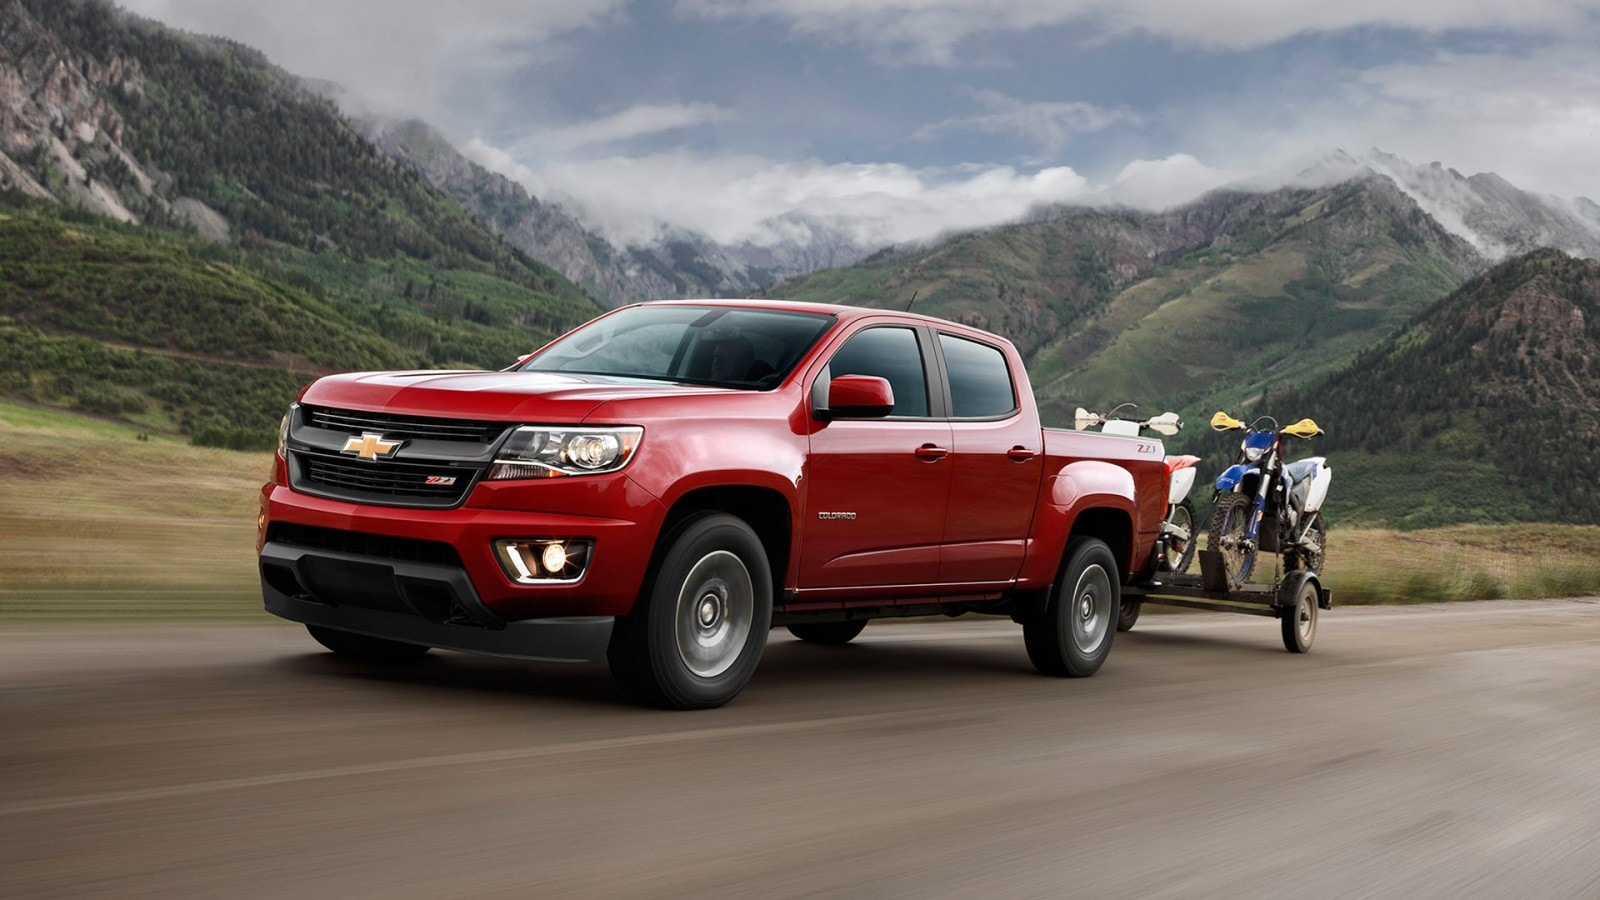 22016 Chevy Colorado for sale in Cincinnati